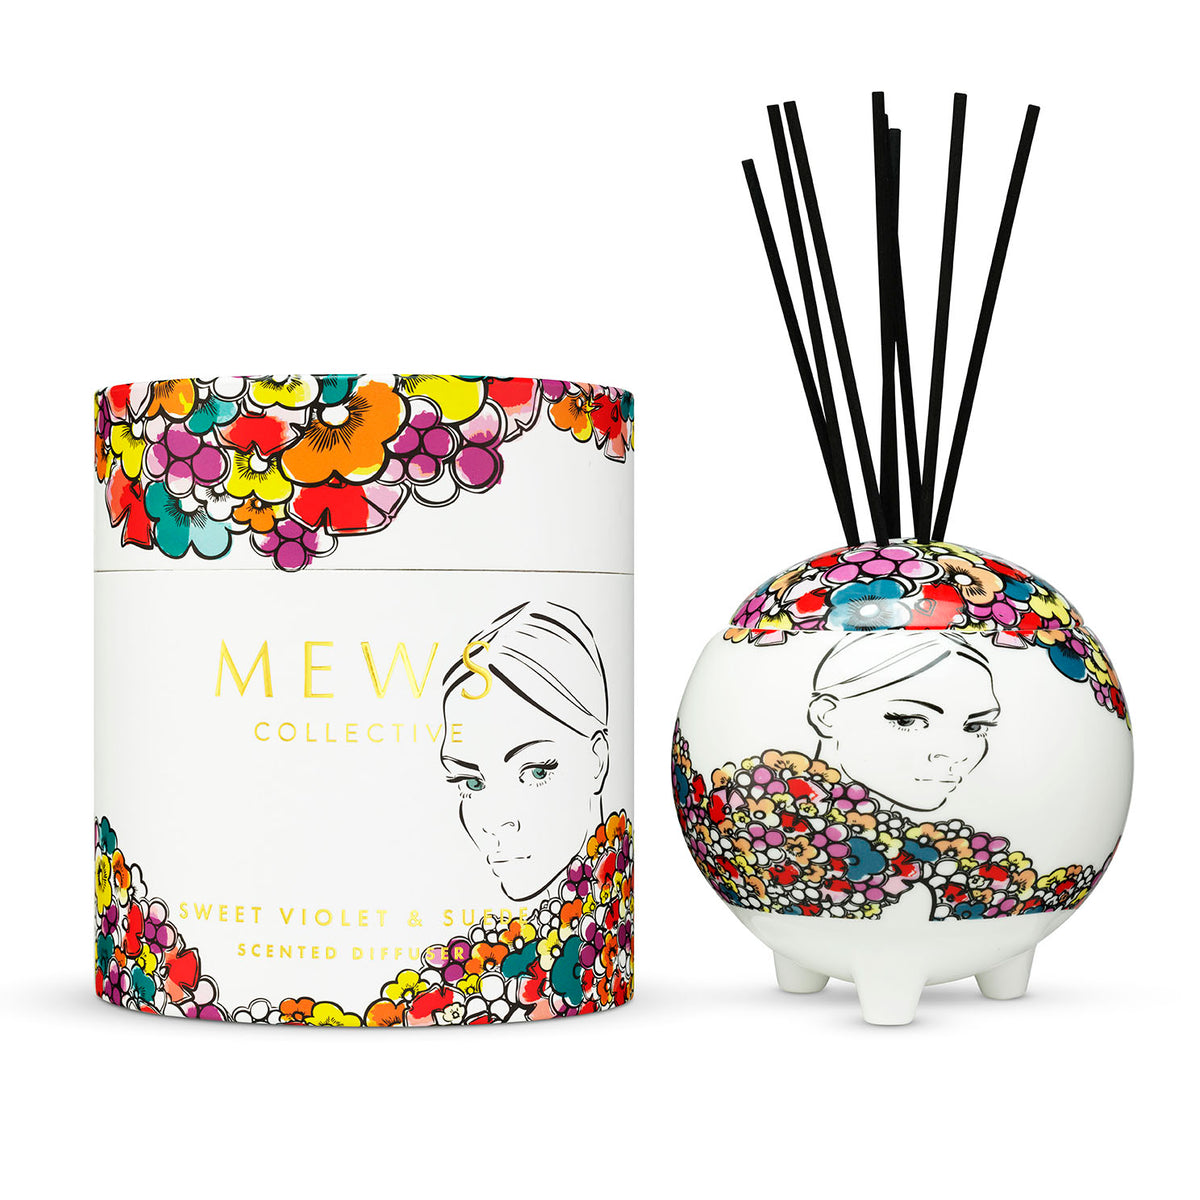 MEWS SWEET VIOLET & SUEDE – SCENTED DIFFUSER 350ml